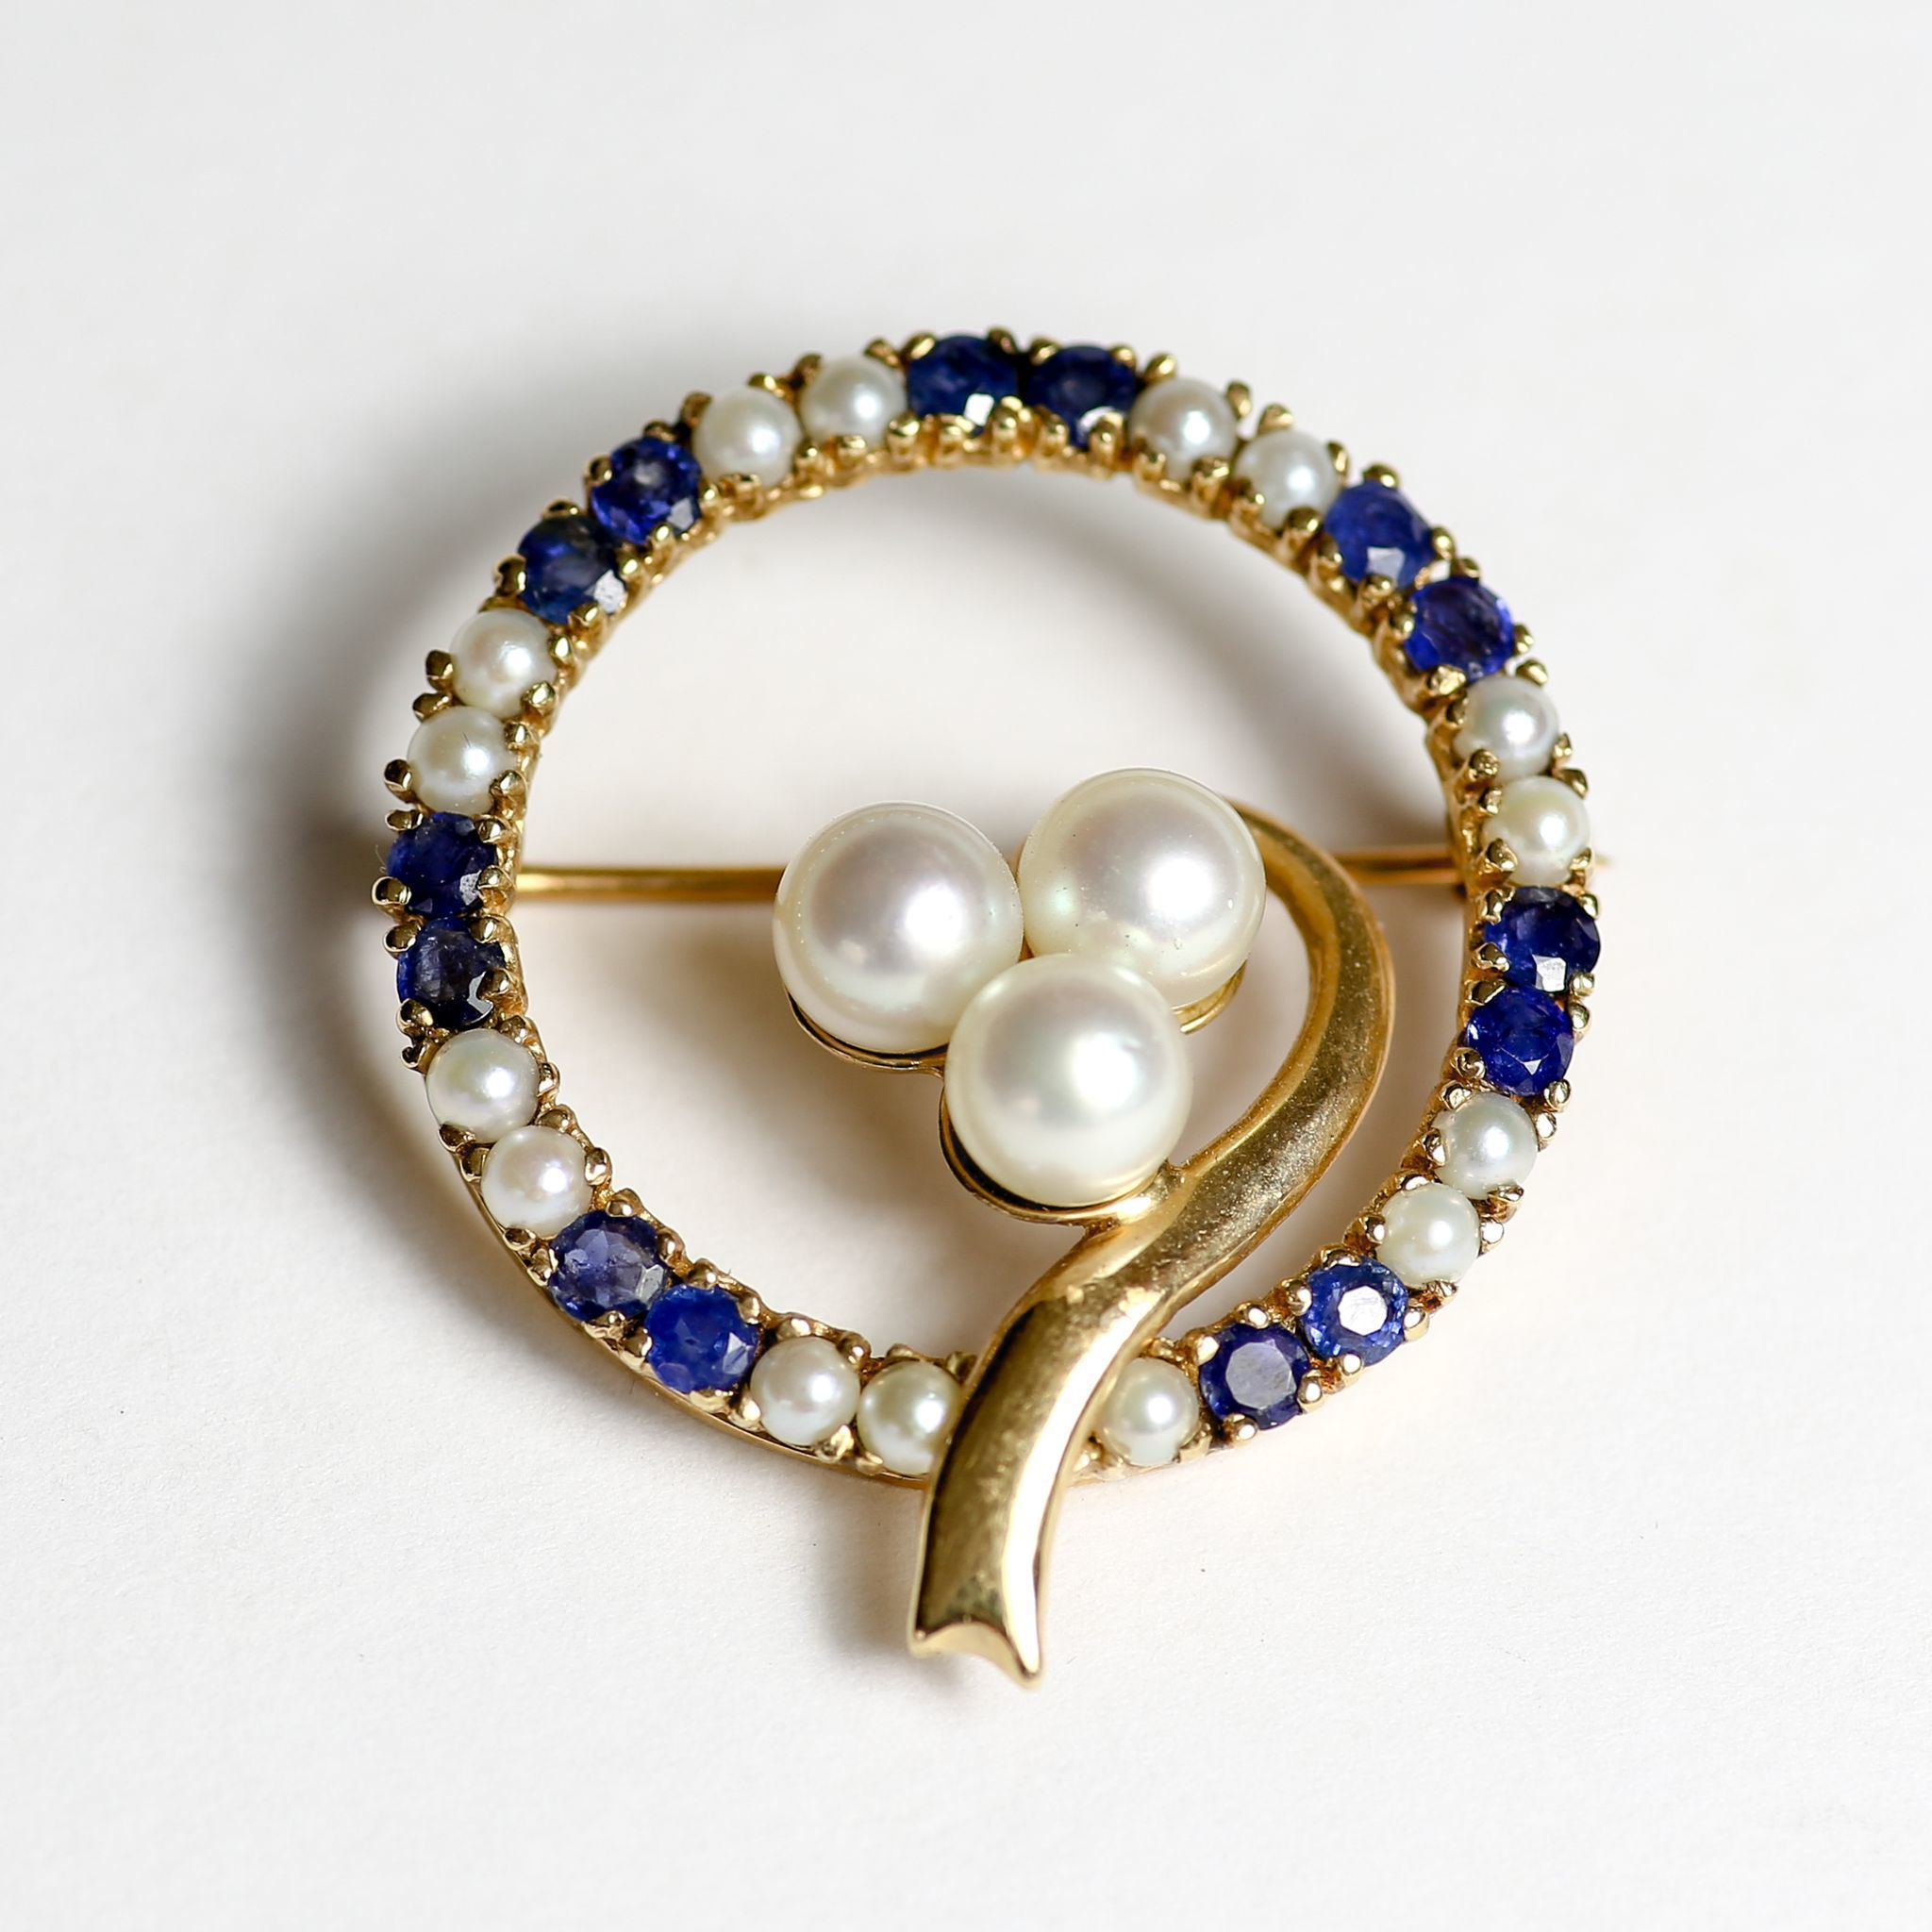 Vintage Circa 1940's Lady's 14K Sapphire & Pearl Brooch